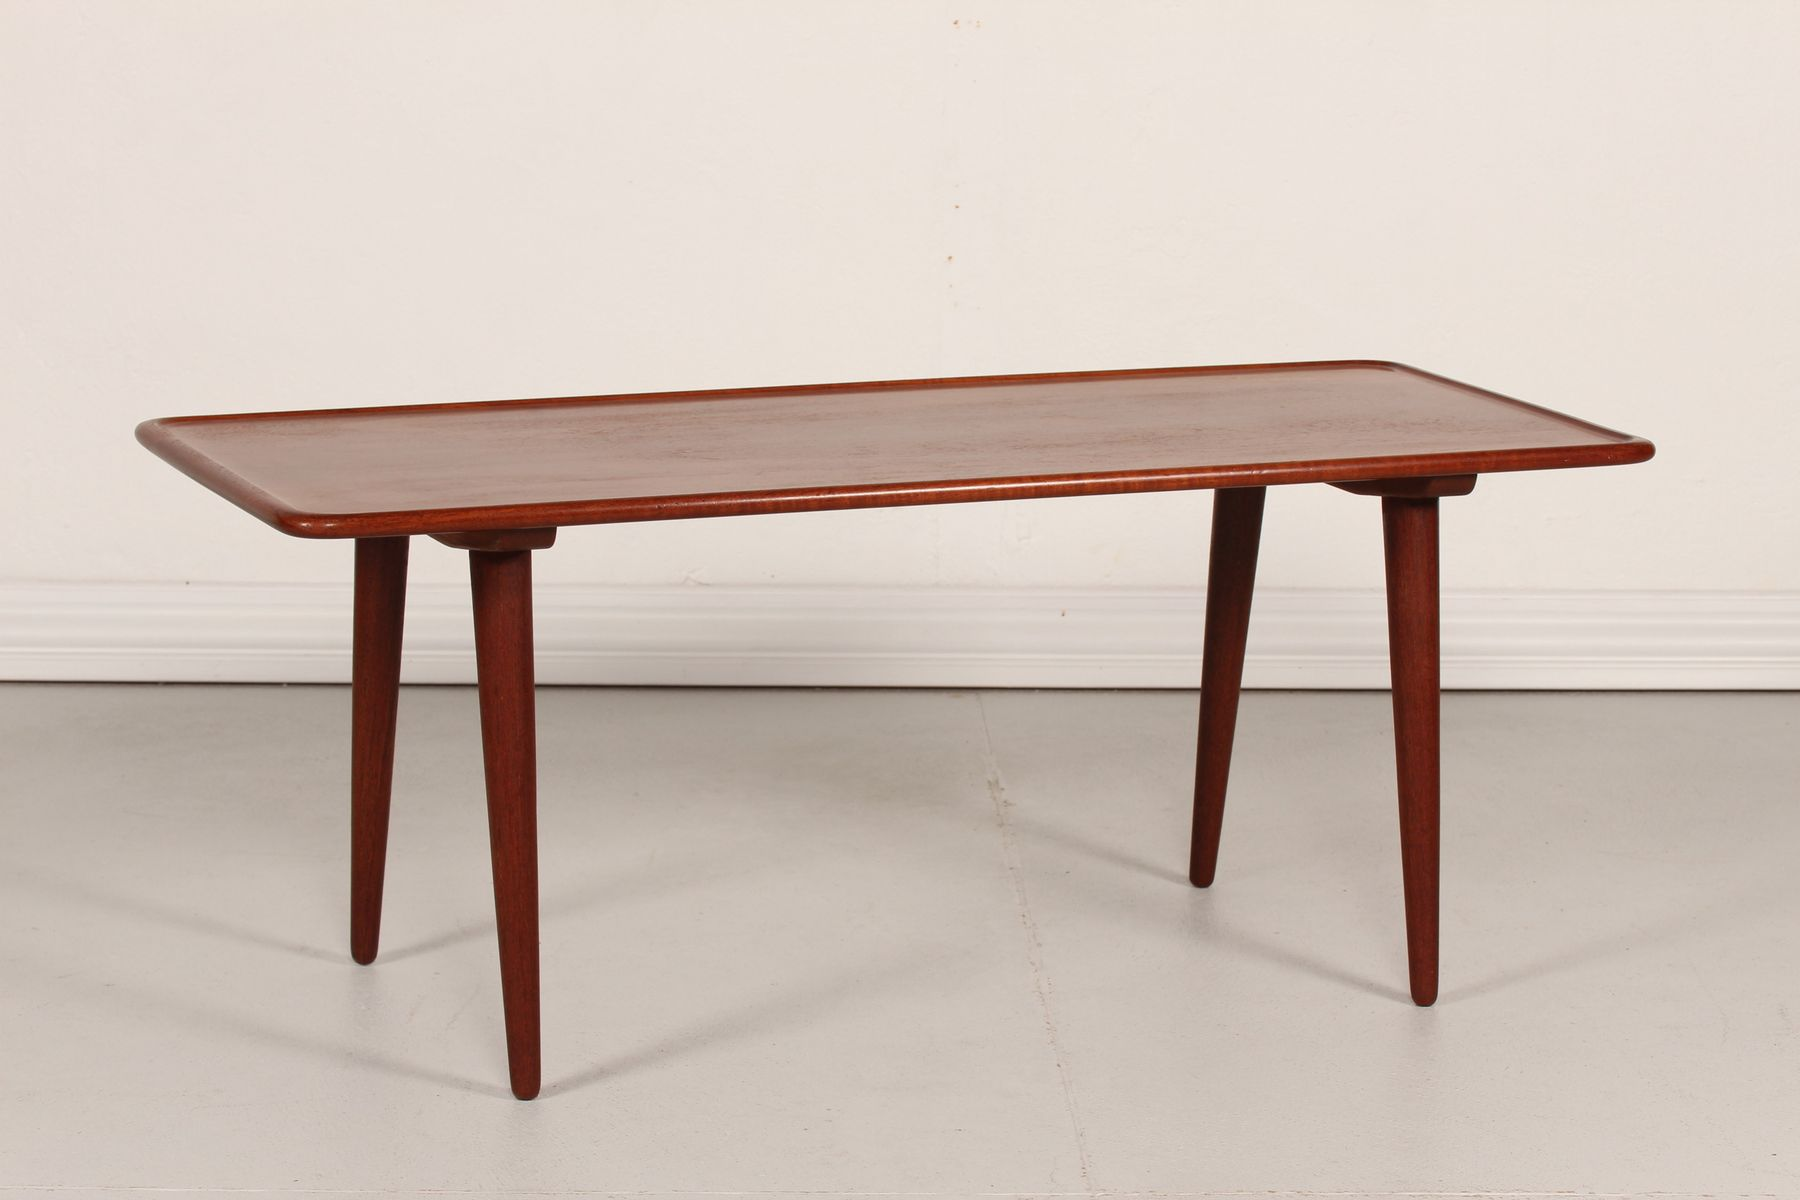 Danish At 11 Teak Coffee Table By Hans J Wegner For Andreas Tuck 1950s For Sale At Pamono